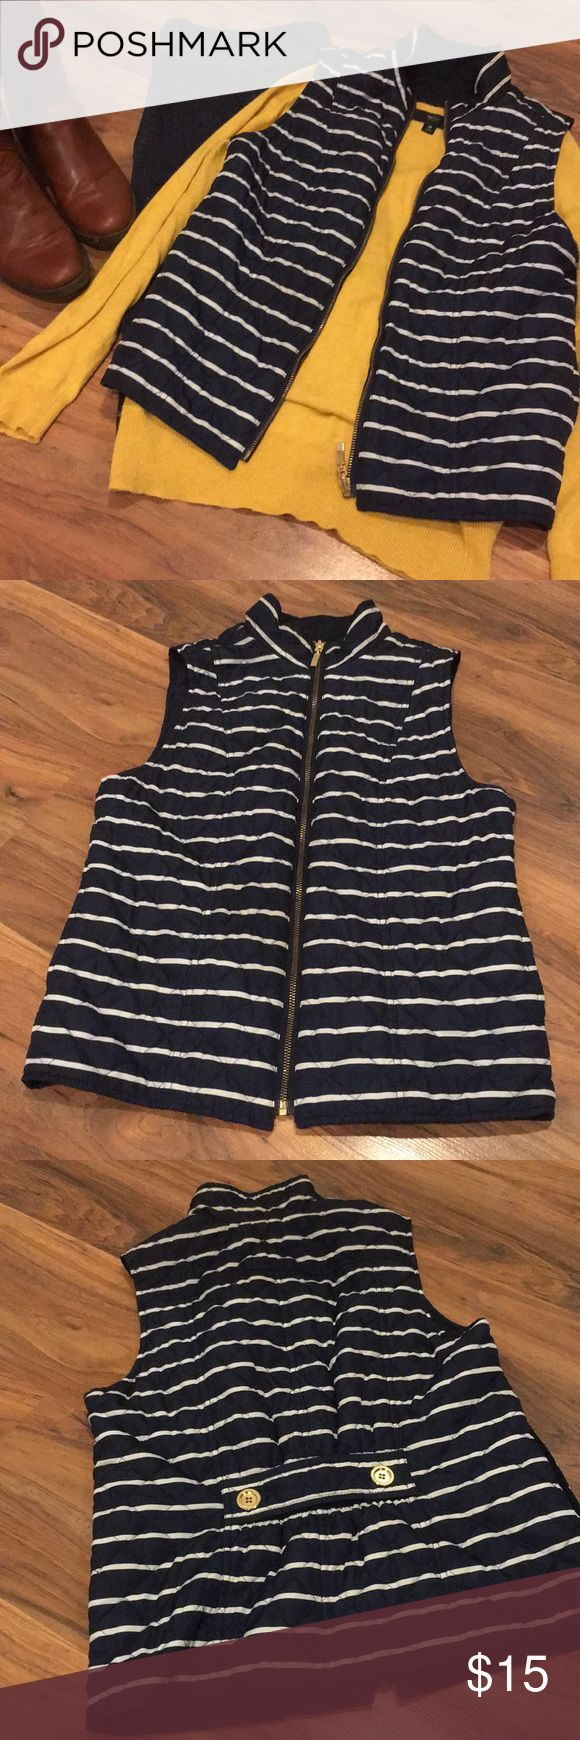 Navy & White Striped Reversible Vest Perfect condition! Striped side has pockets. No size or brand tag, fits like XS/S and I believe it is from Old Navy. Mustard sweater and denim skirt also available. Old Navy Jackets & Coats Vests